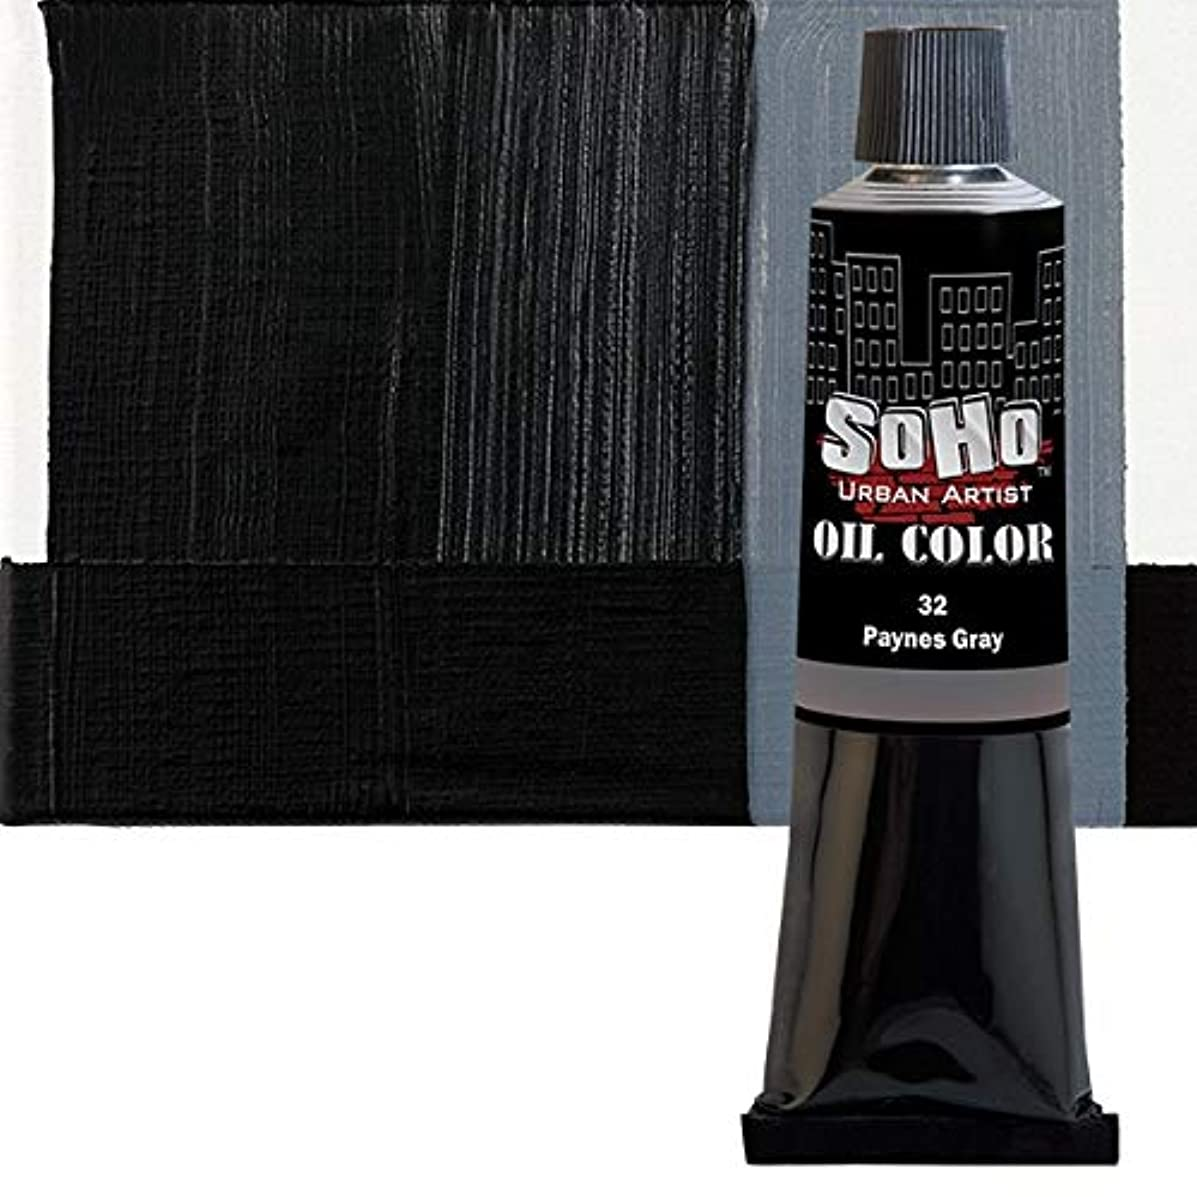 SoHo Urban Artist Oil Color Paint and High Pigmented Professional Oil Paint - 170 ml Tube - Payne's Grey